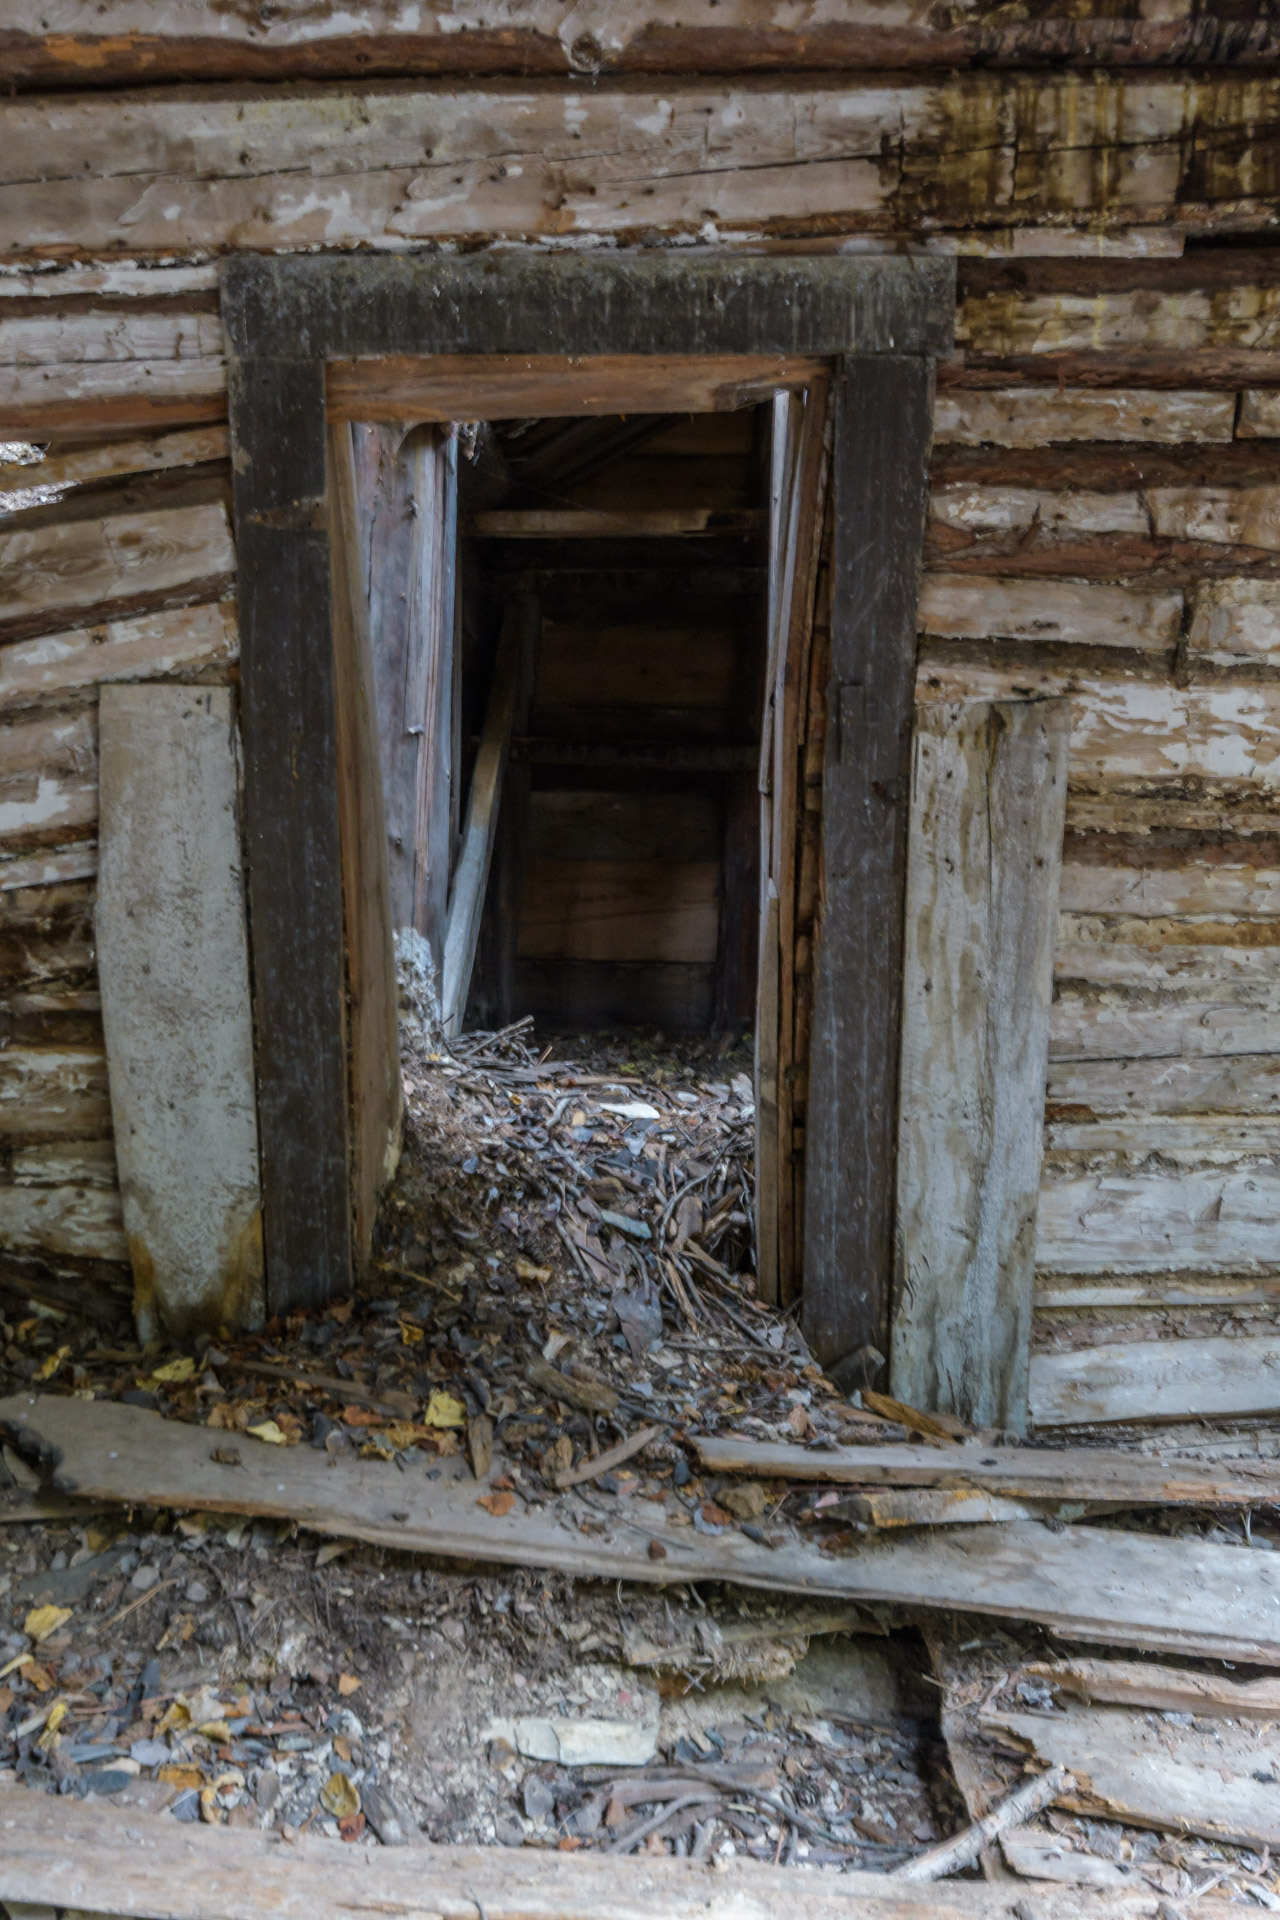 Entrance to an old root cellar